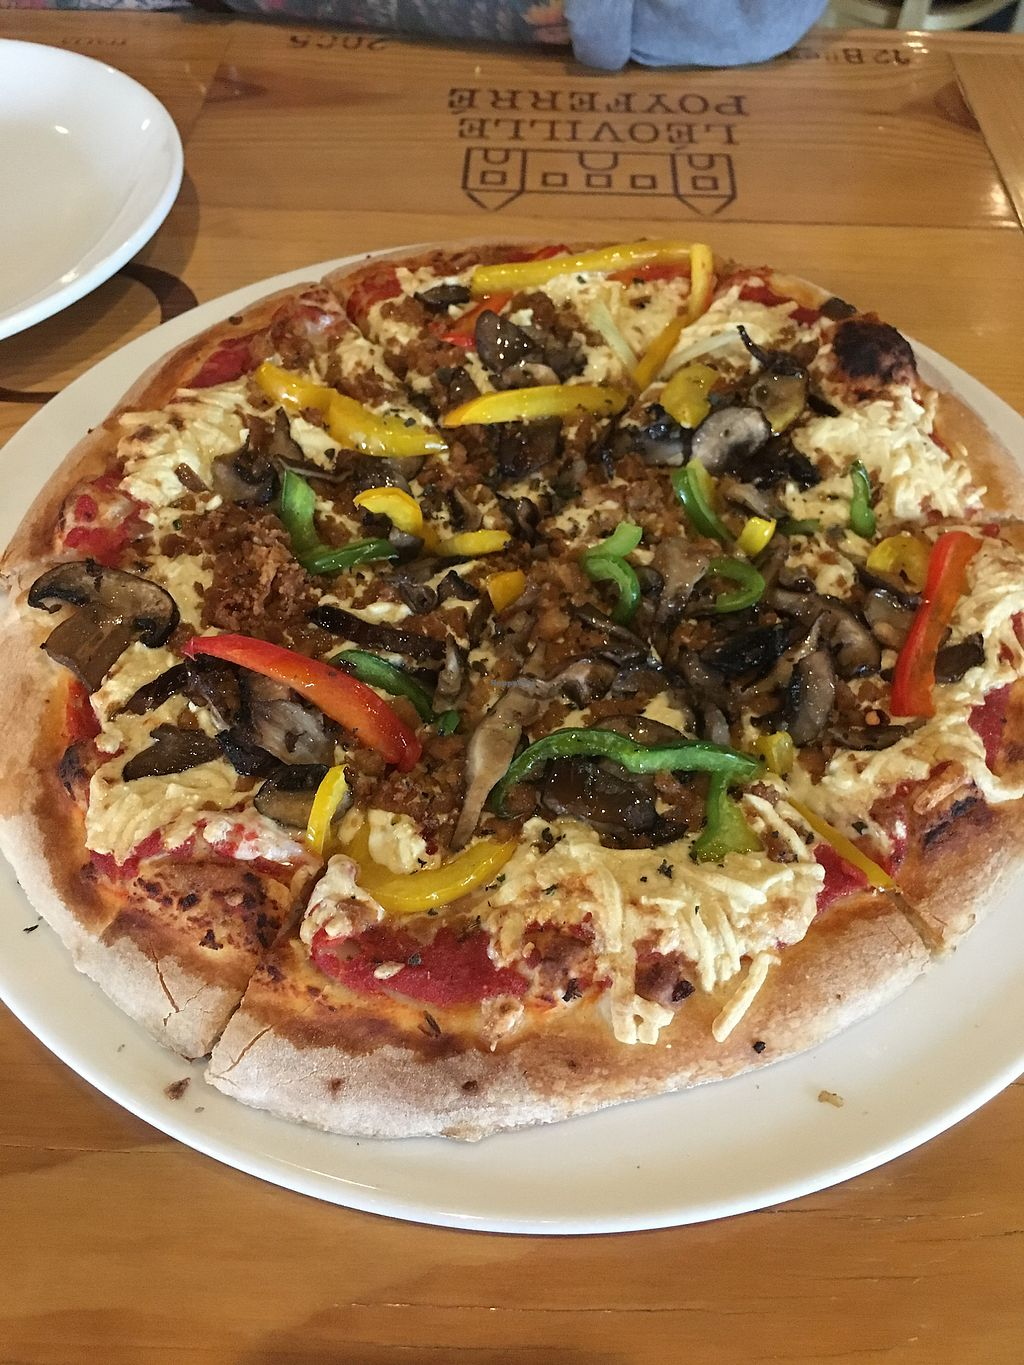 "Photo of Humble Wine Bar  by <a href=""/members/profile/veganrosebud"">veganrosebud</a> <br/>Vegan ""sausage"" pizza with an added assortment of mushrooms <br/> July 18, 2017  - <a href='/contact/abuse/image/61032/281650'>Report</a>"